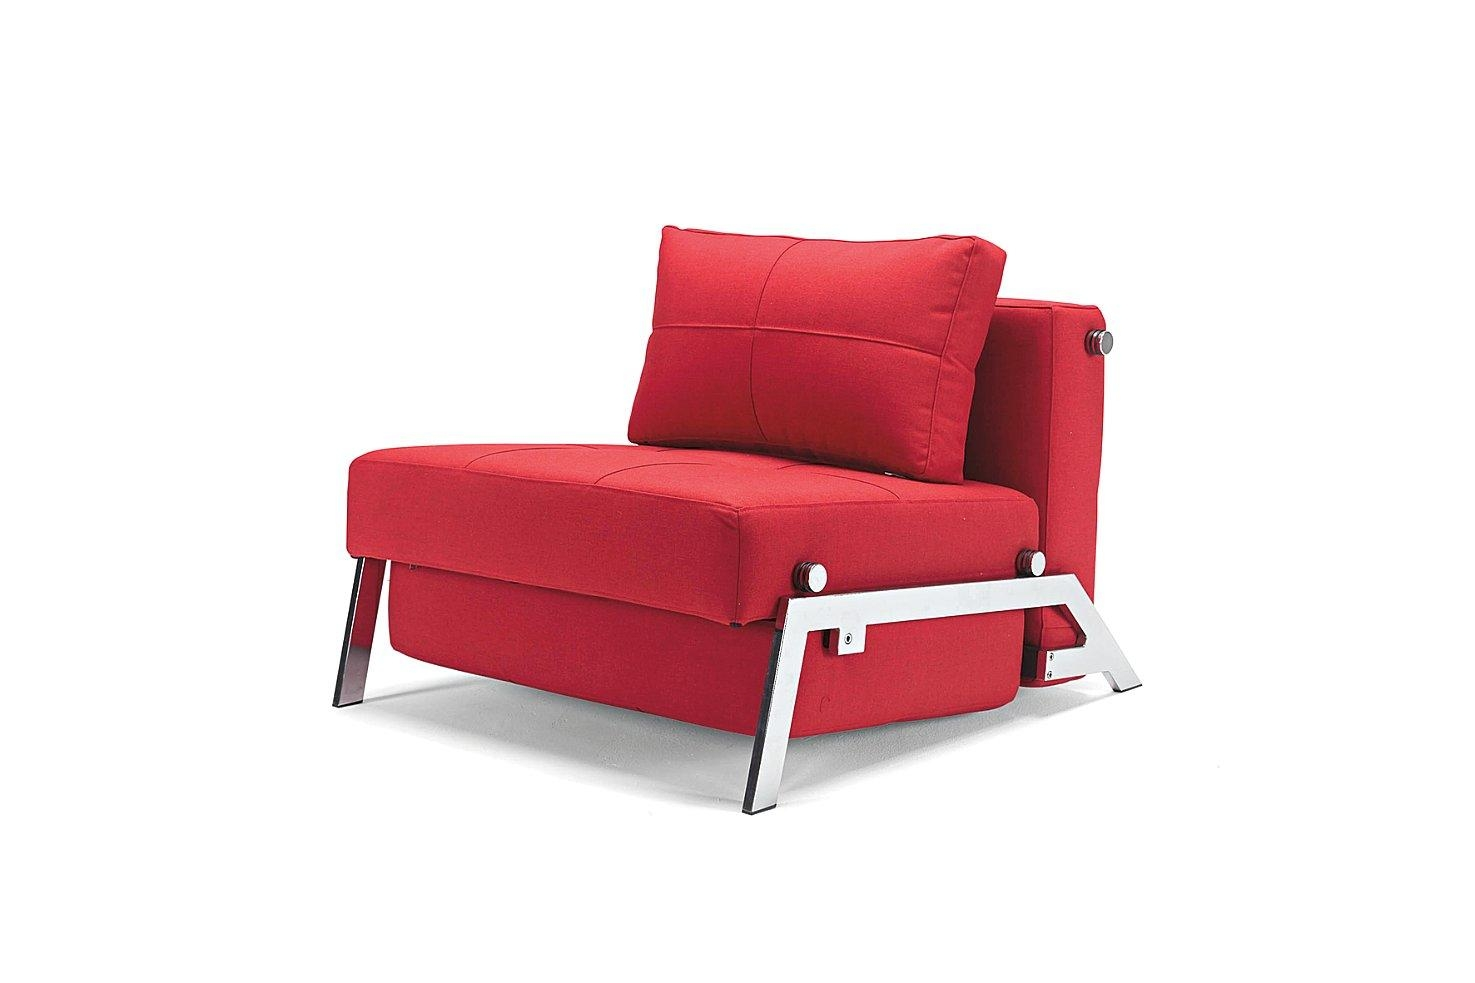 20 choices of single sofa bed chairs sofa ideas - Contemporary sectional sleeper sofa a good choice for your home ...